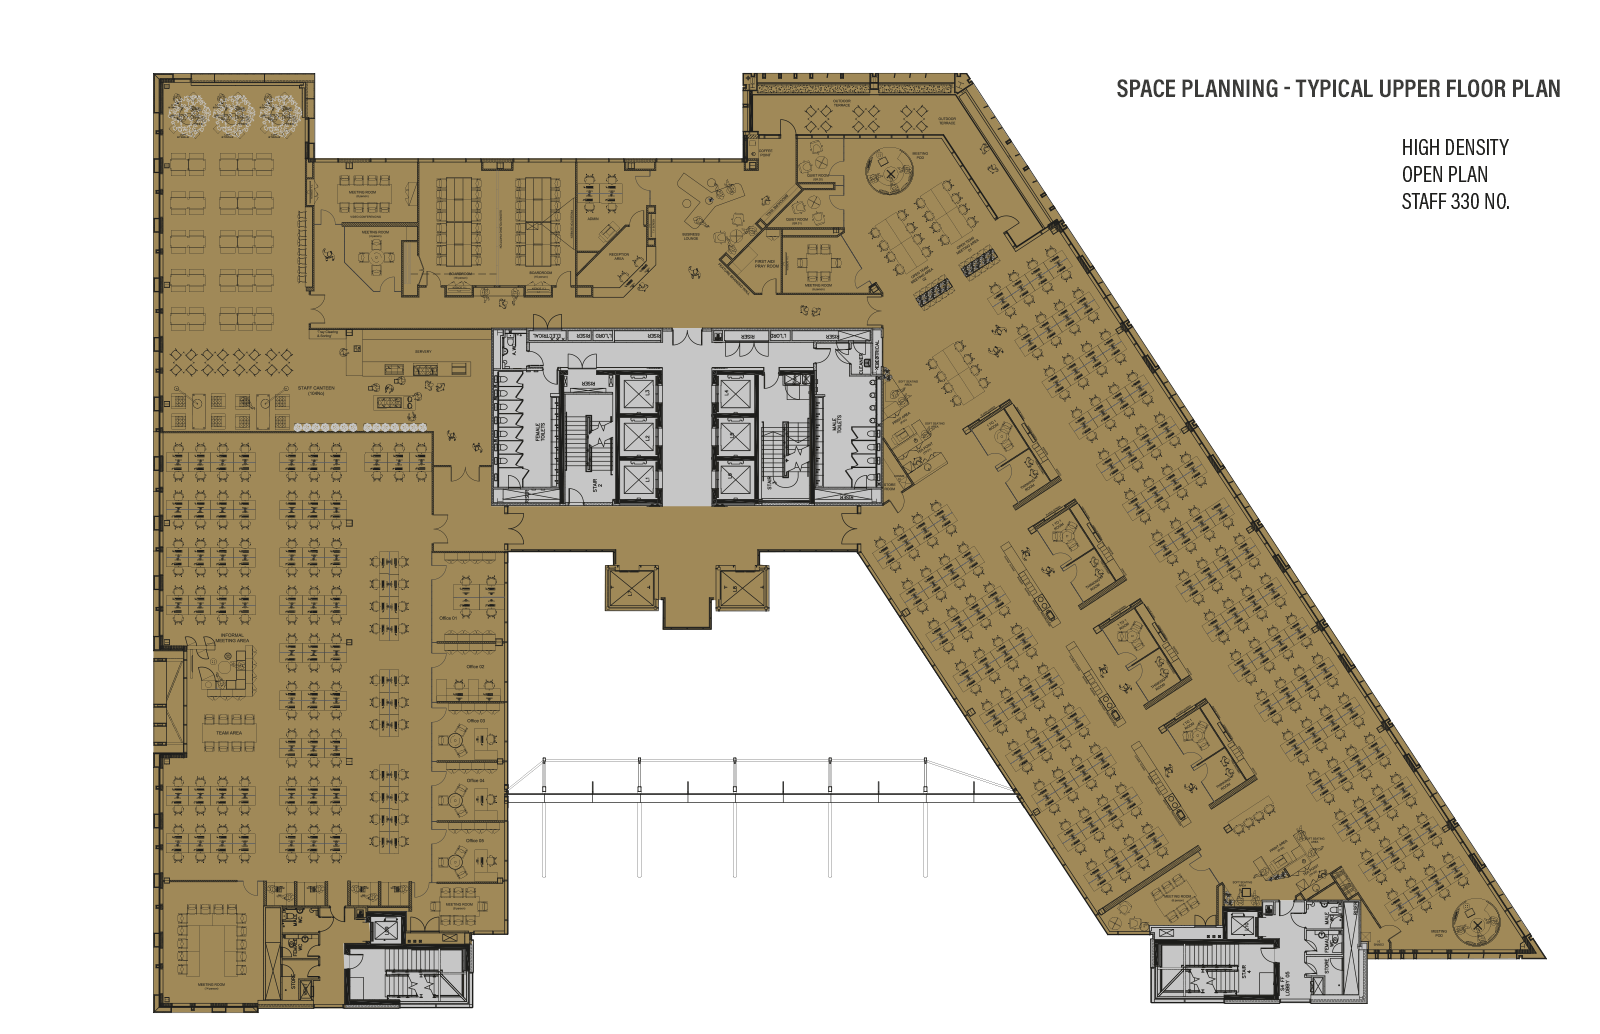 Typical Upper Floor - Space Planning - High